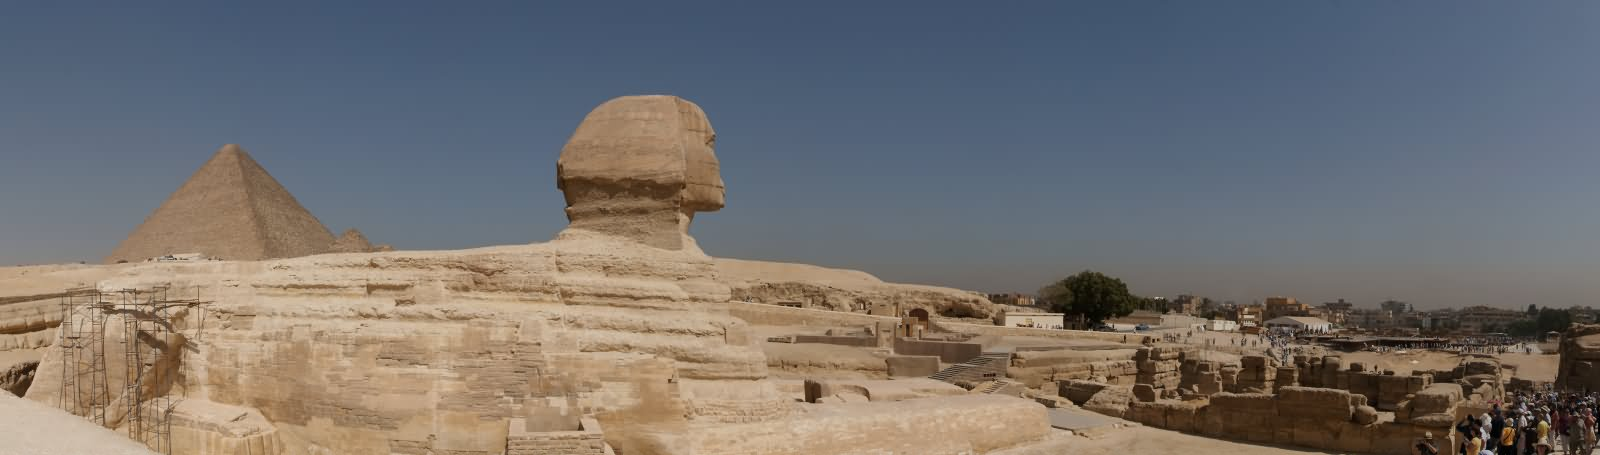 Panorama View Of The Great Sphinx of Giza